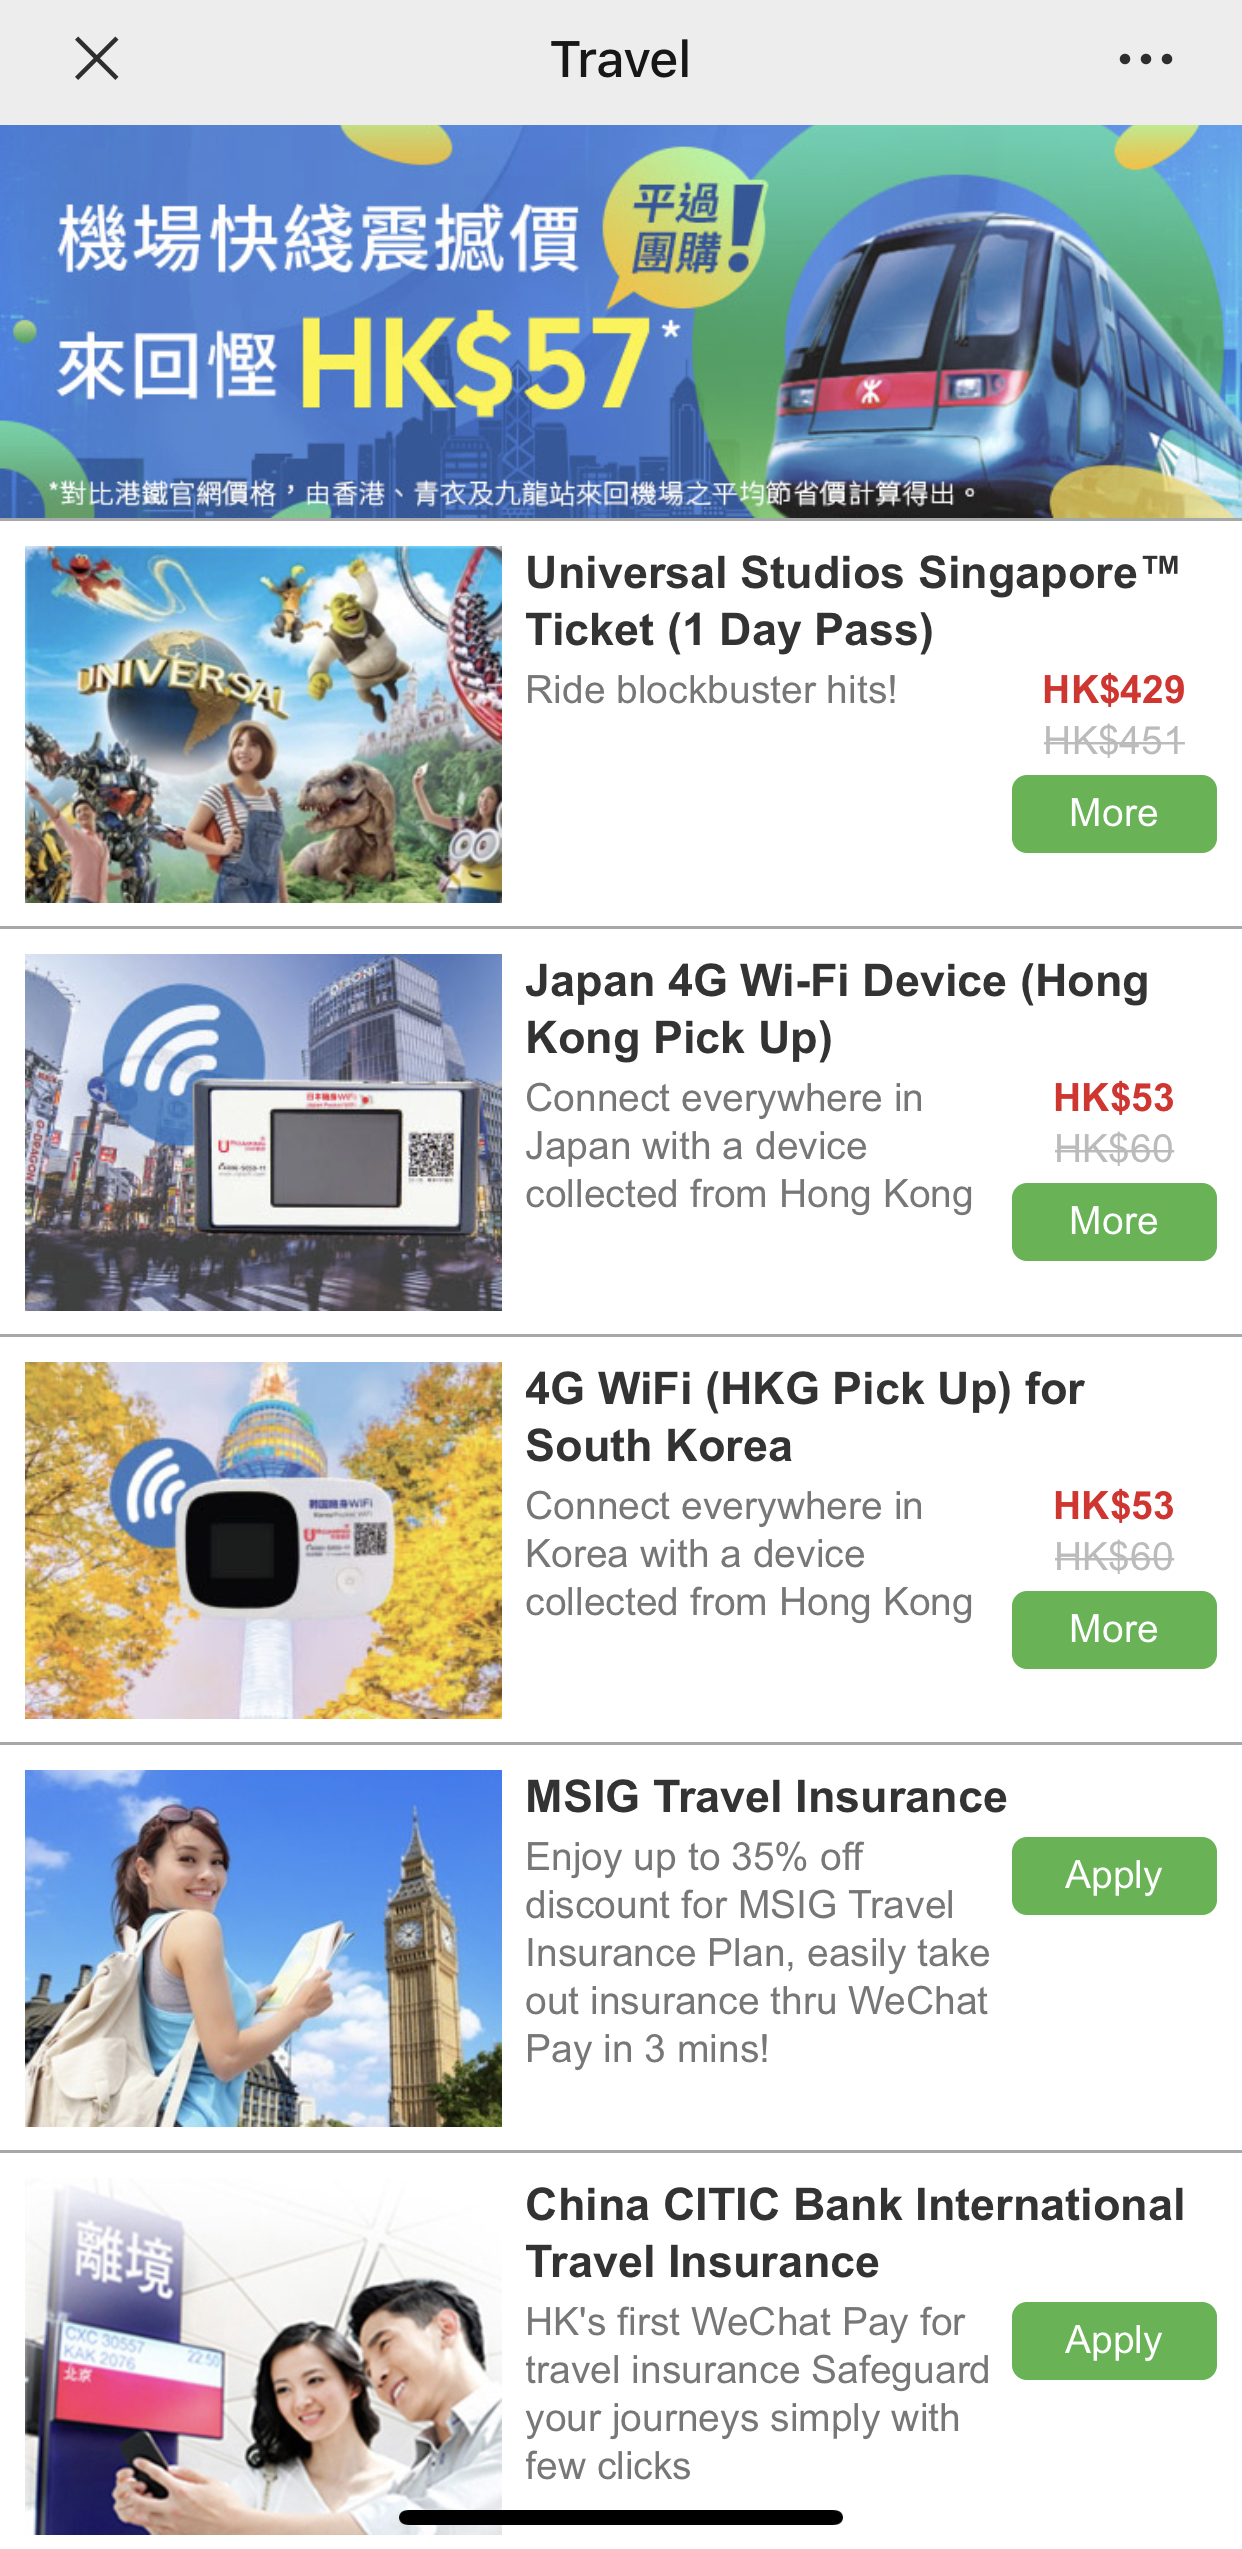 WeChat Pay Travel